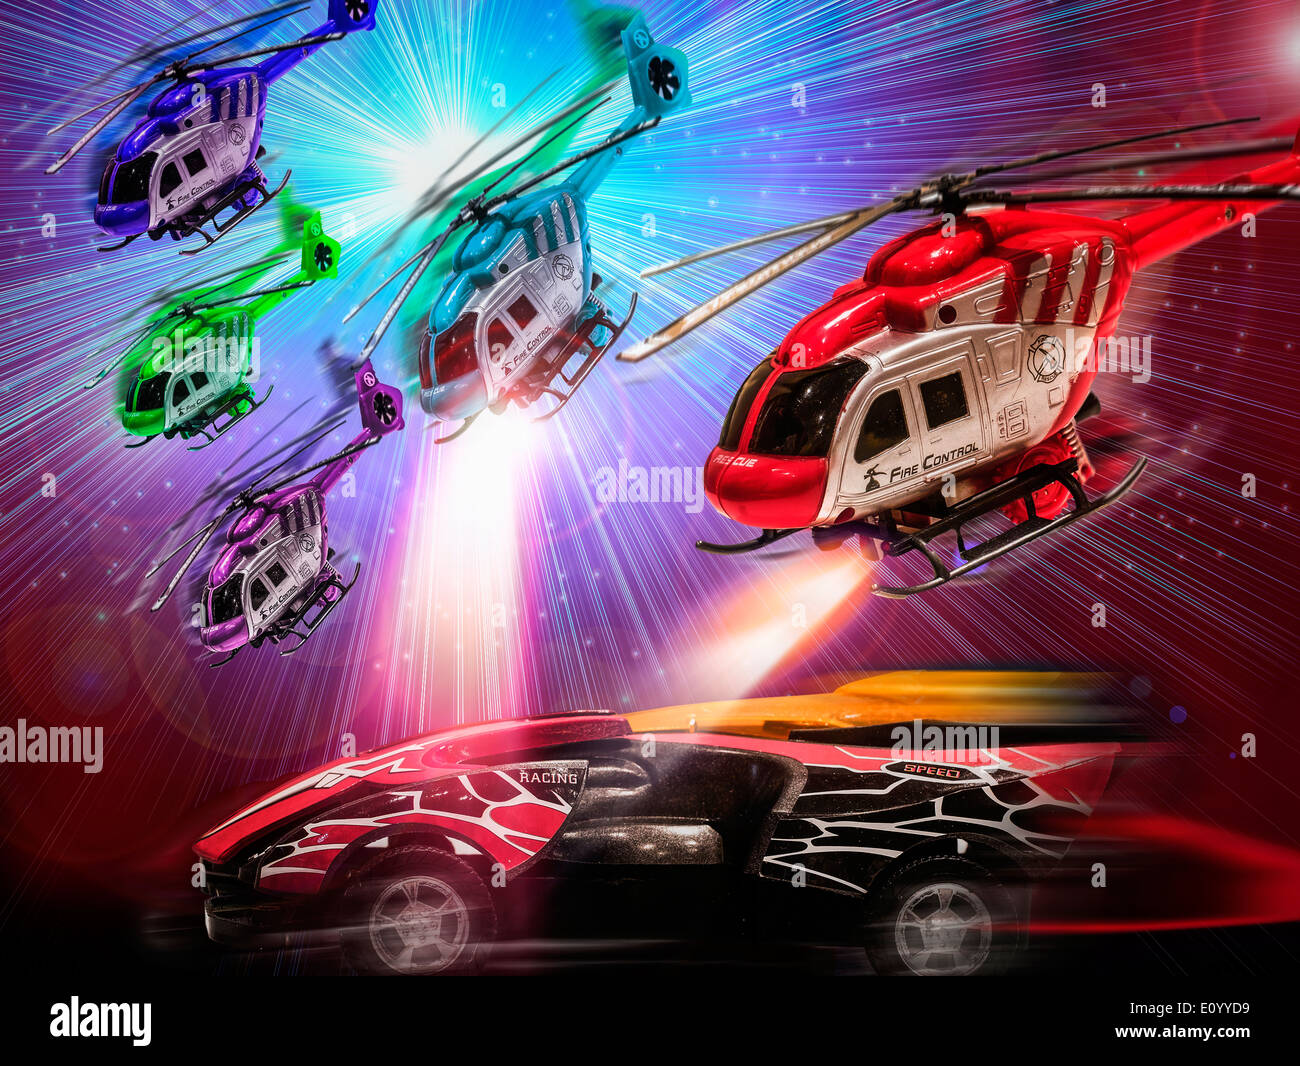 Toy Helicopters Chasing a Toy Car - Stock Image